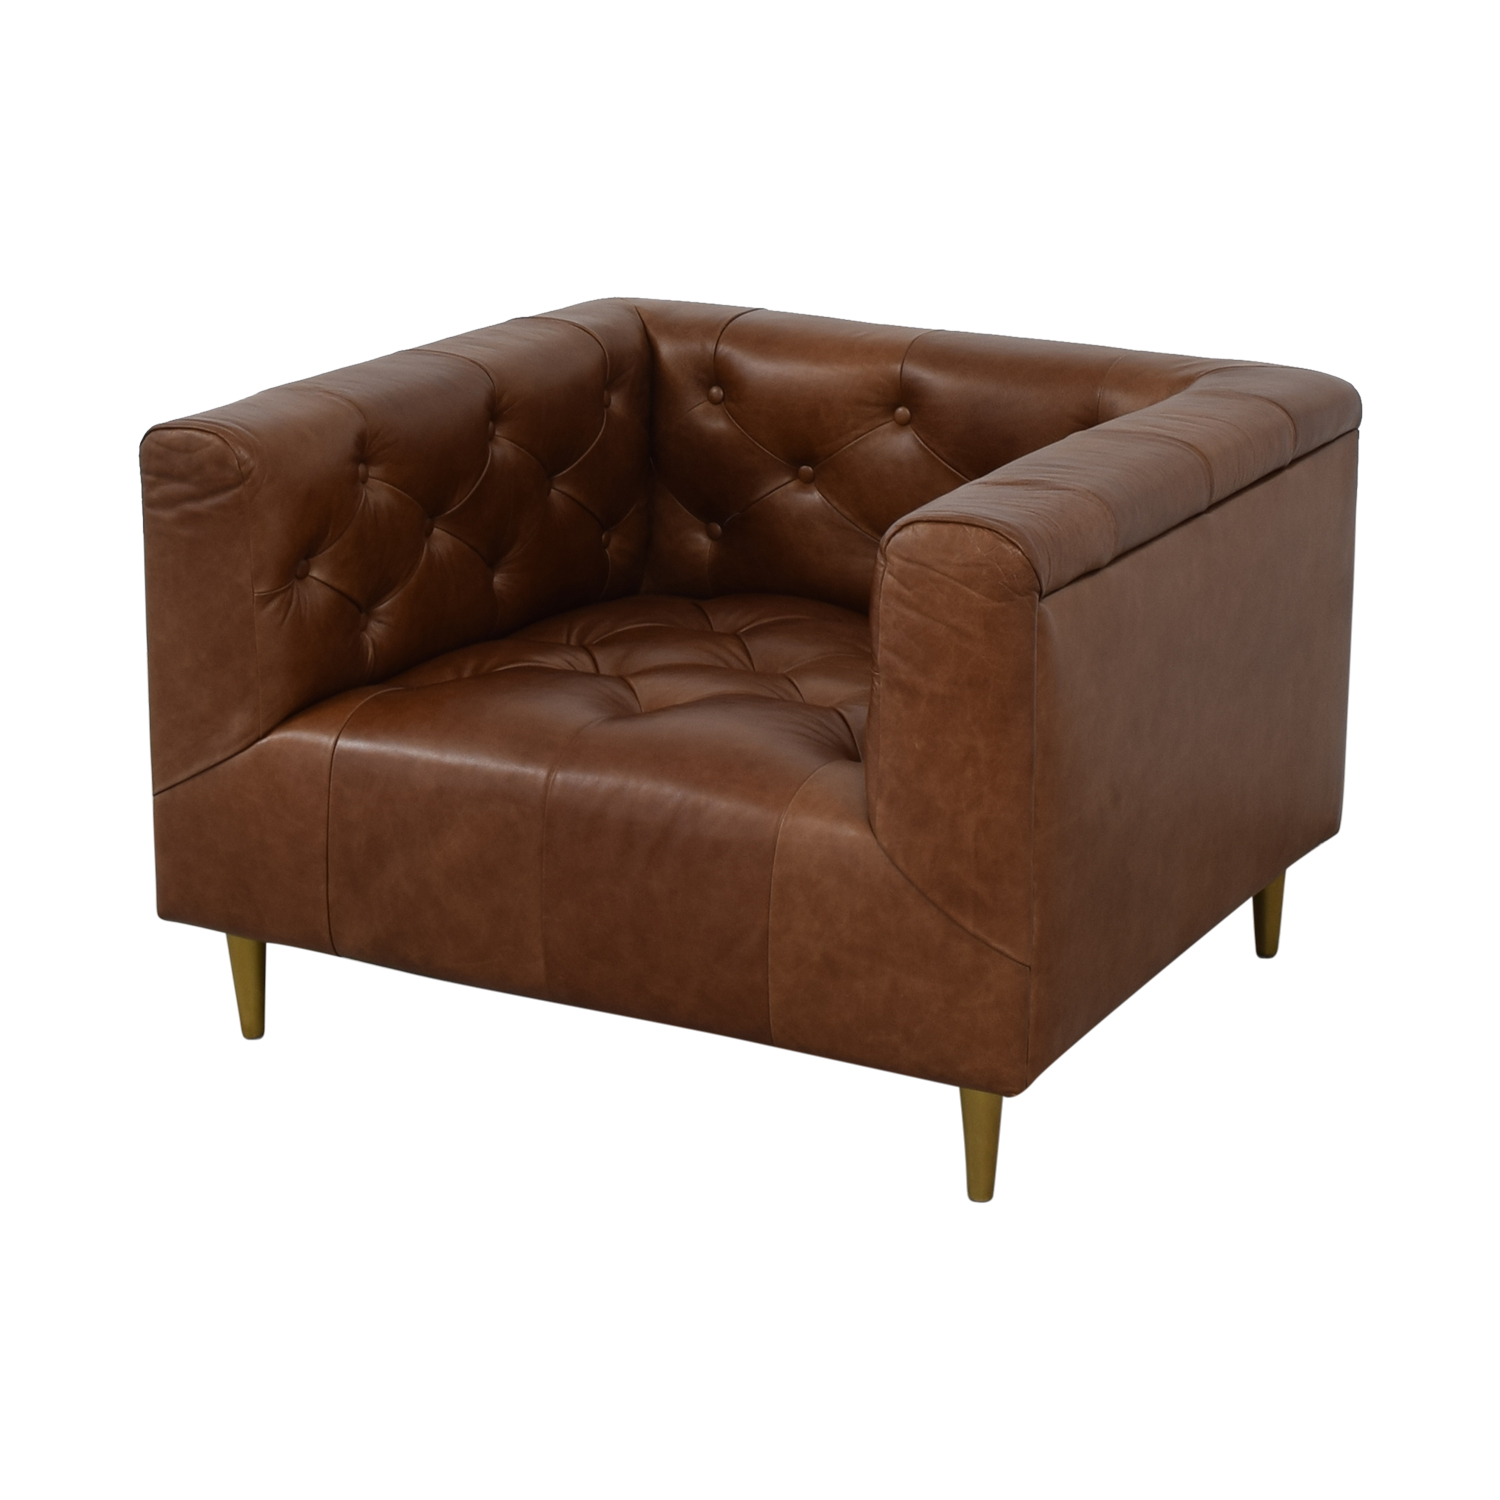 Interior Define Ms. Chesterfield Cognac Tufted Accent Chair on sale